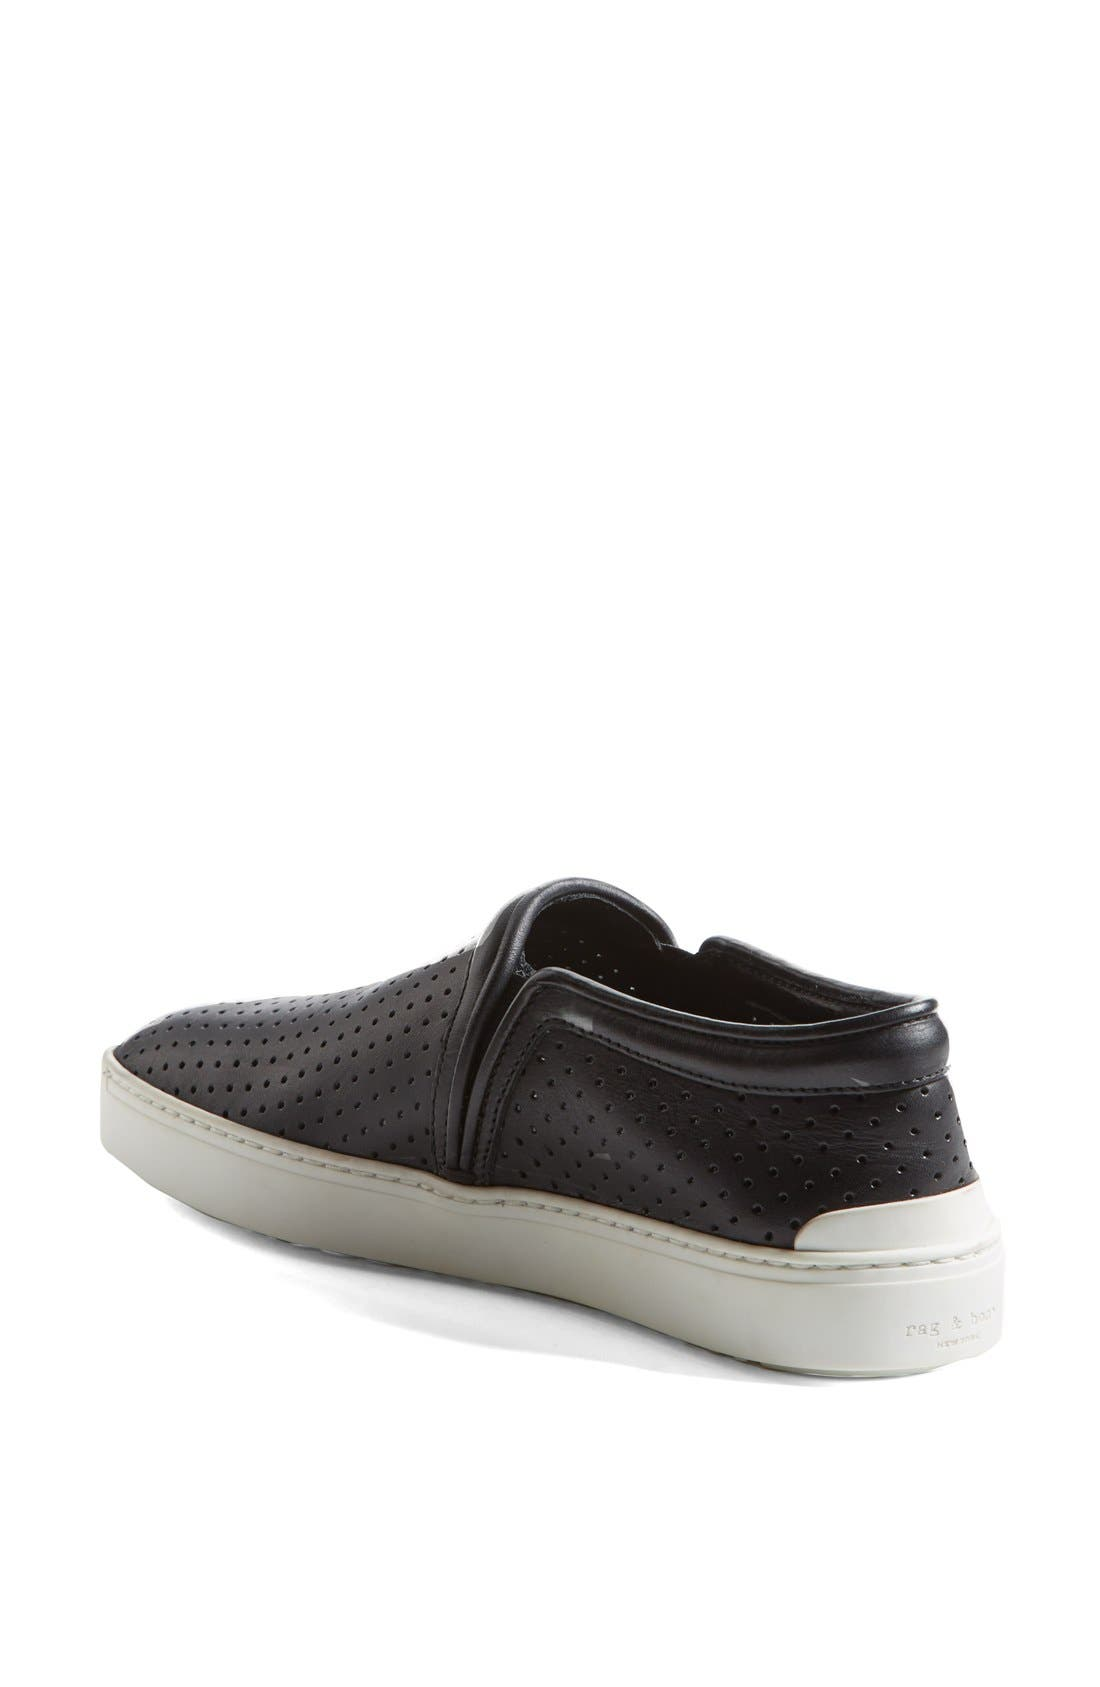 Alternate Image 2  - rag & bone 'Kent' Perforated Leather Slip-On